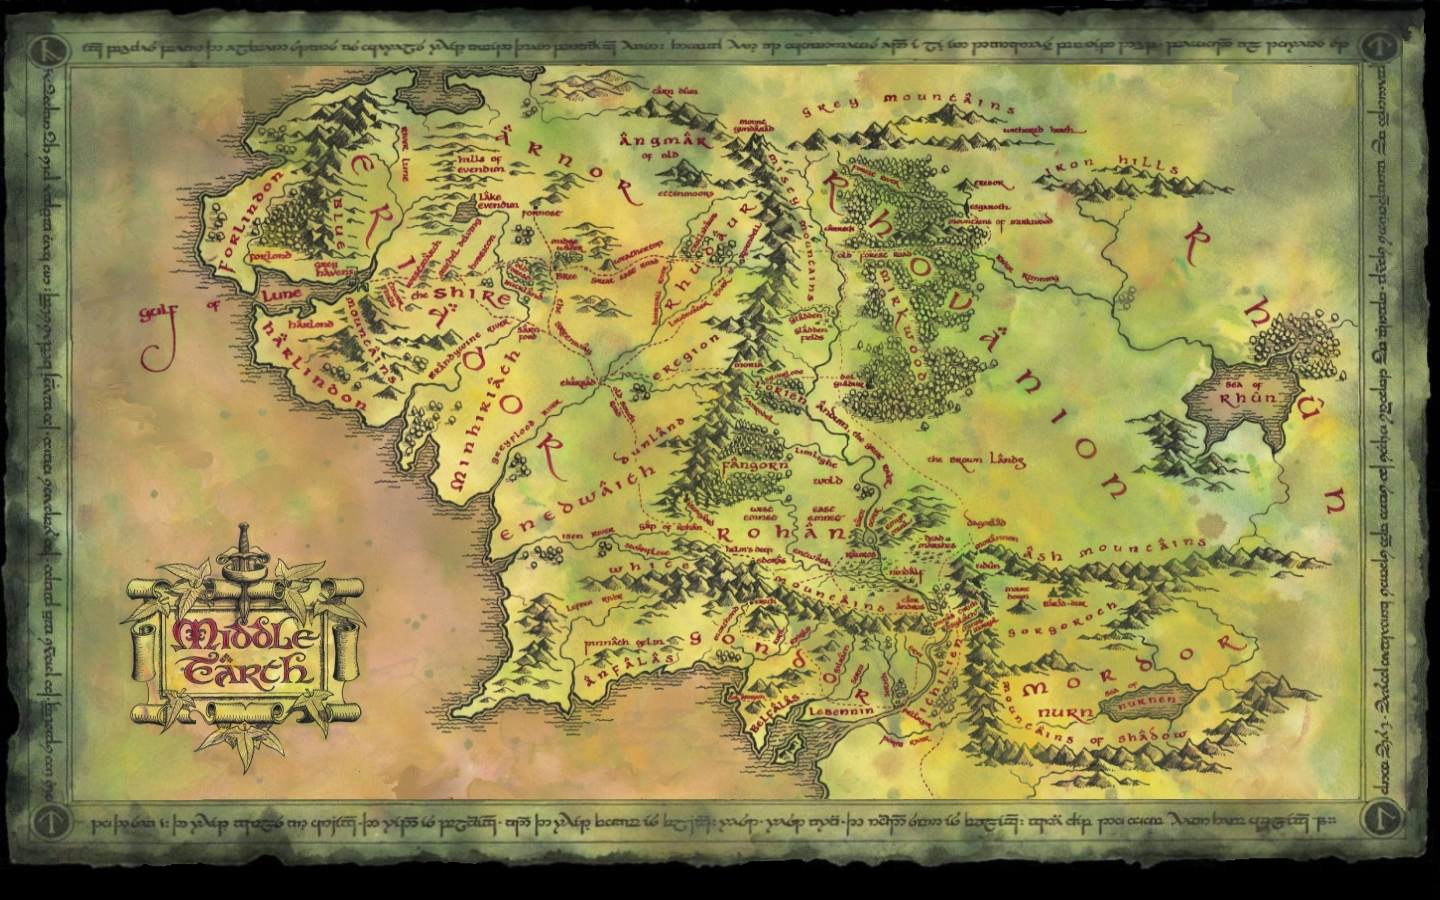 Lord Of The Rings Map wallpaper 4524 1440x900